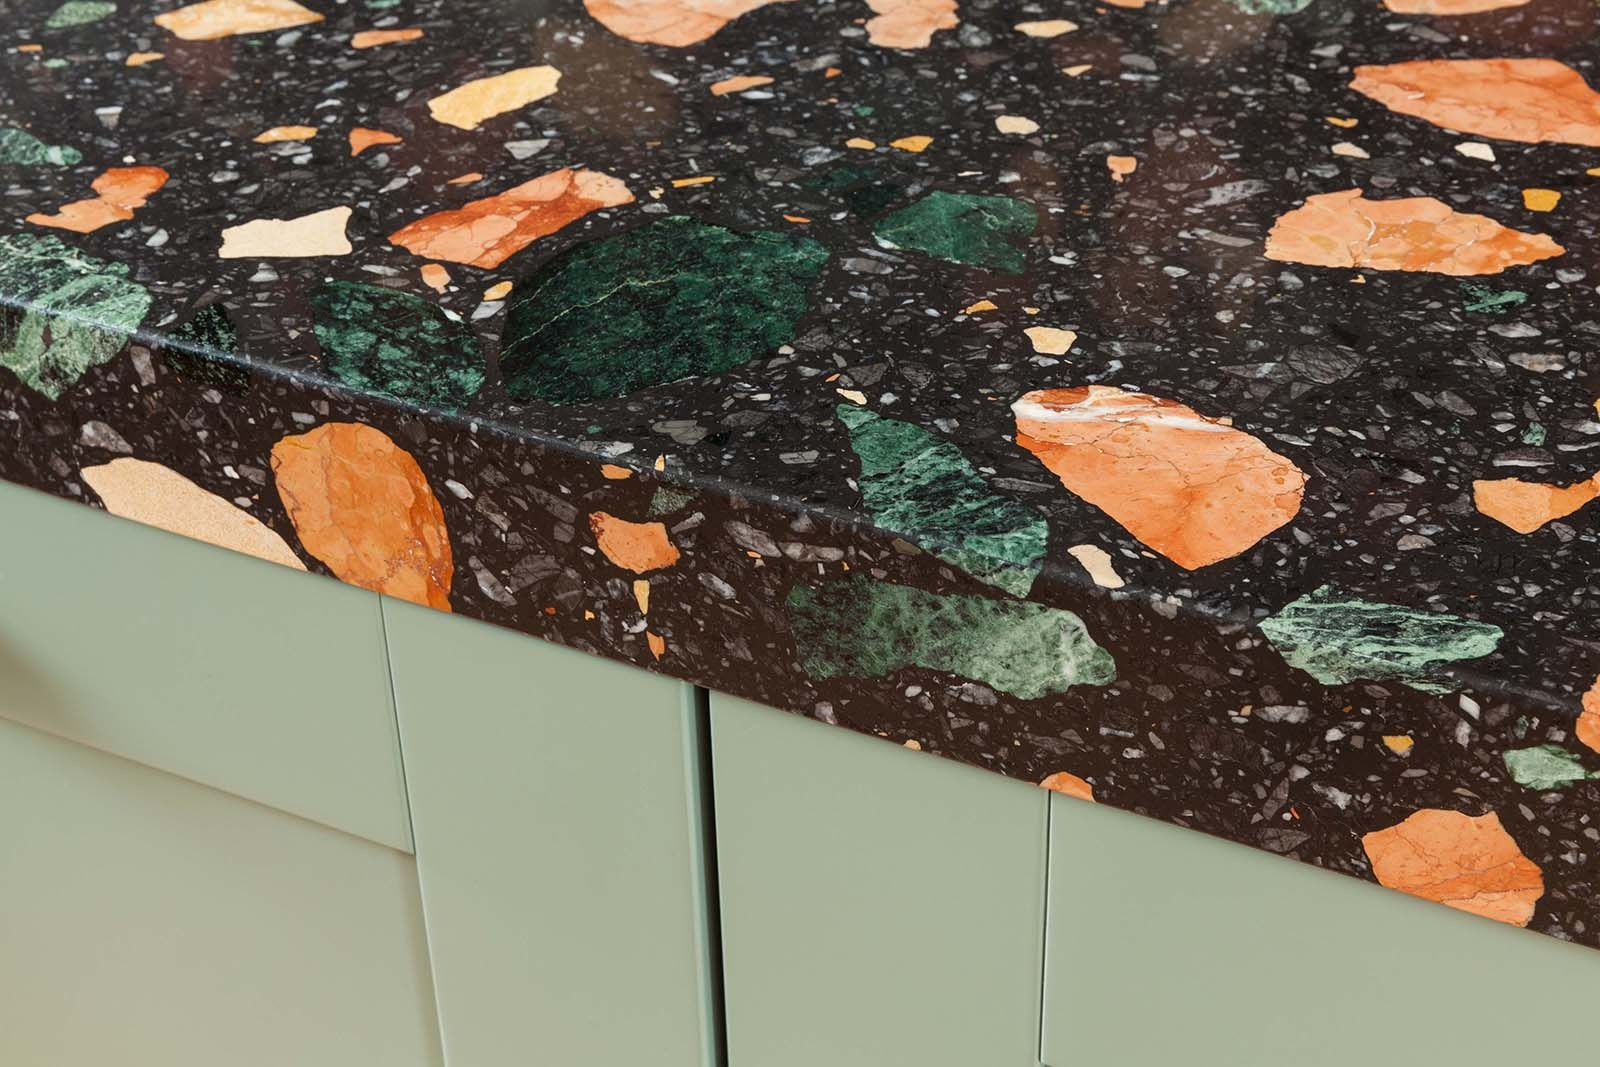 Terrazzo The Flooring Material is Back, and